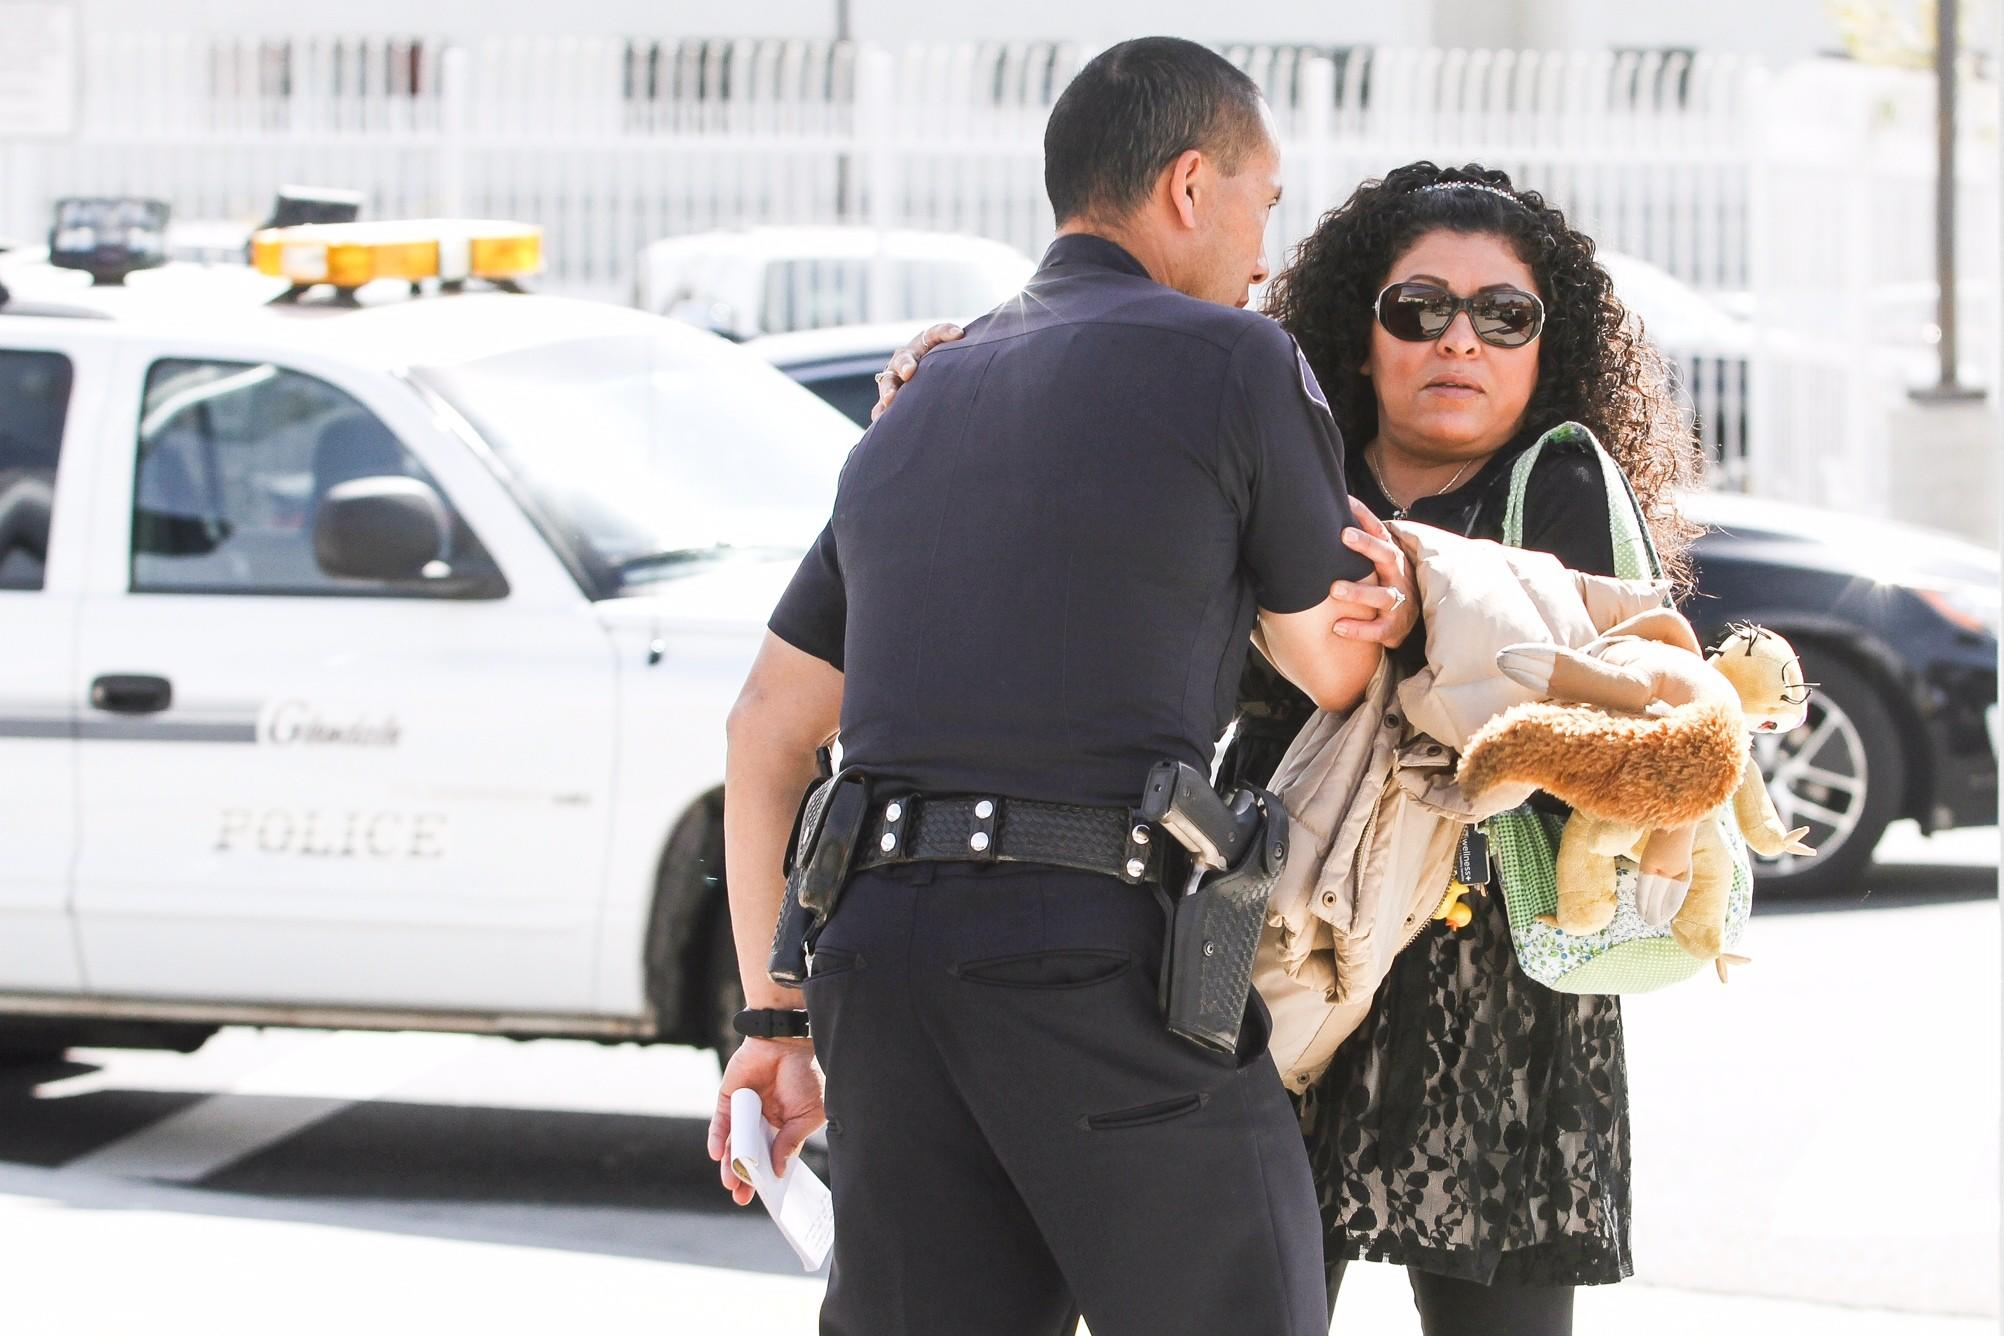 While Glendale Police Officer Stan Mar interviews a witness, she reenacts how a suspect may have stabbed a woman at Pacific Avenue and San Fernando Road on Thursday.